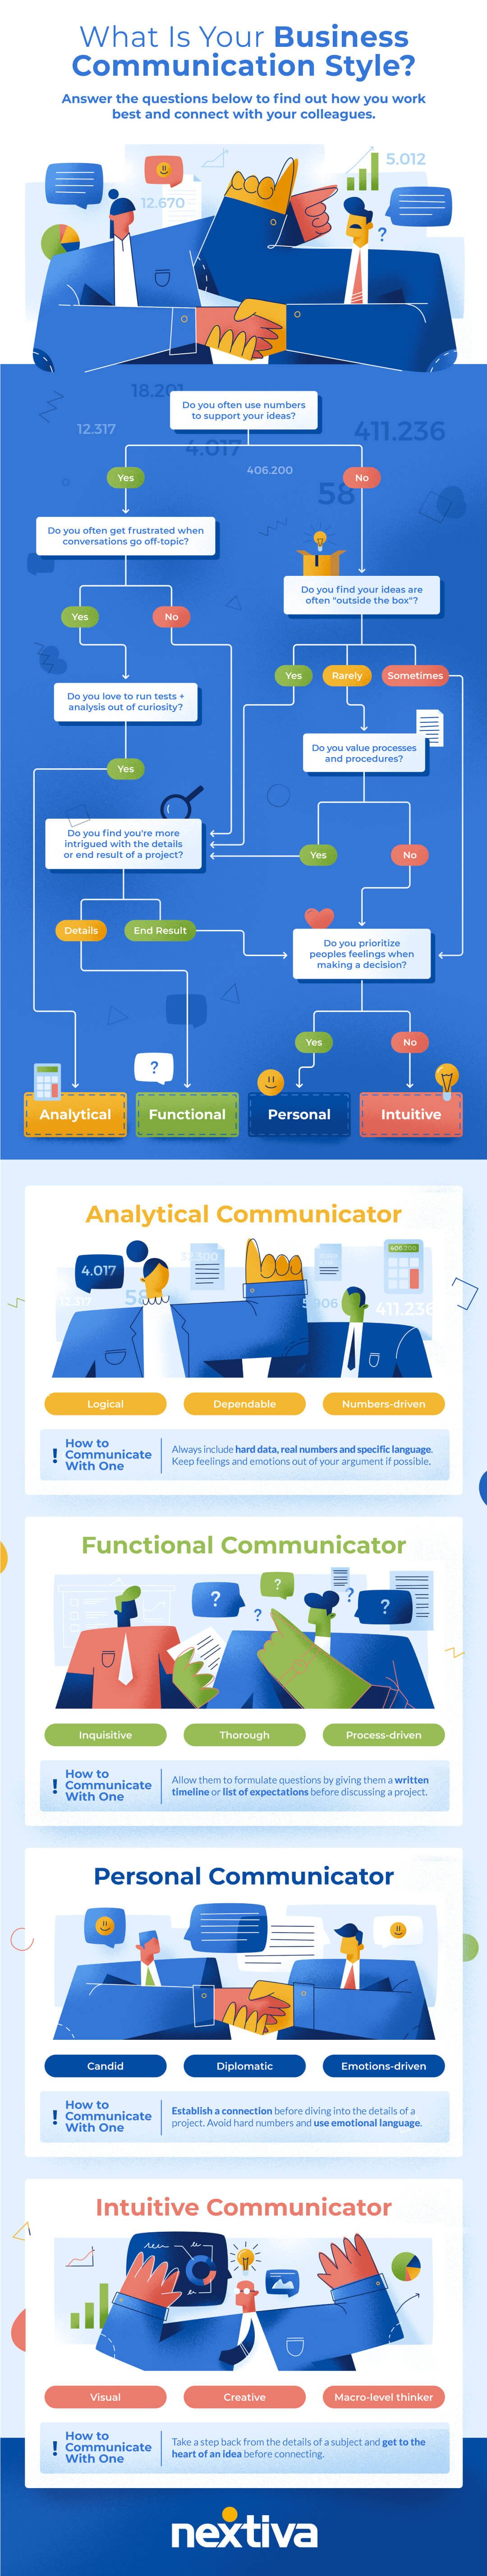 How to Work With the 4 Different Types of Communication Styles